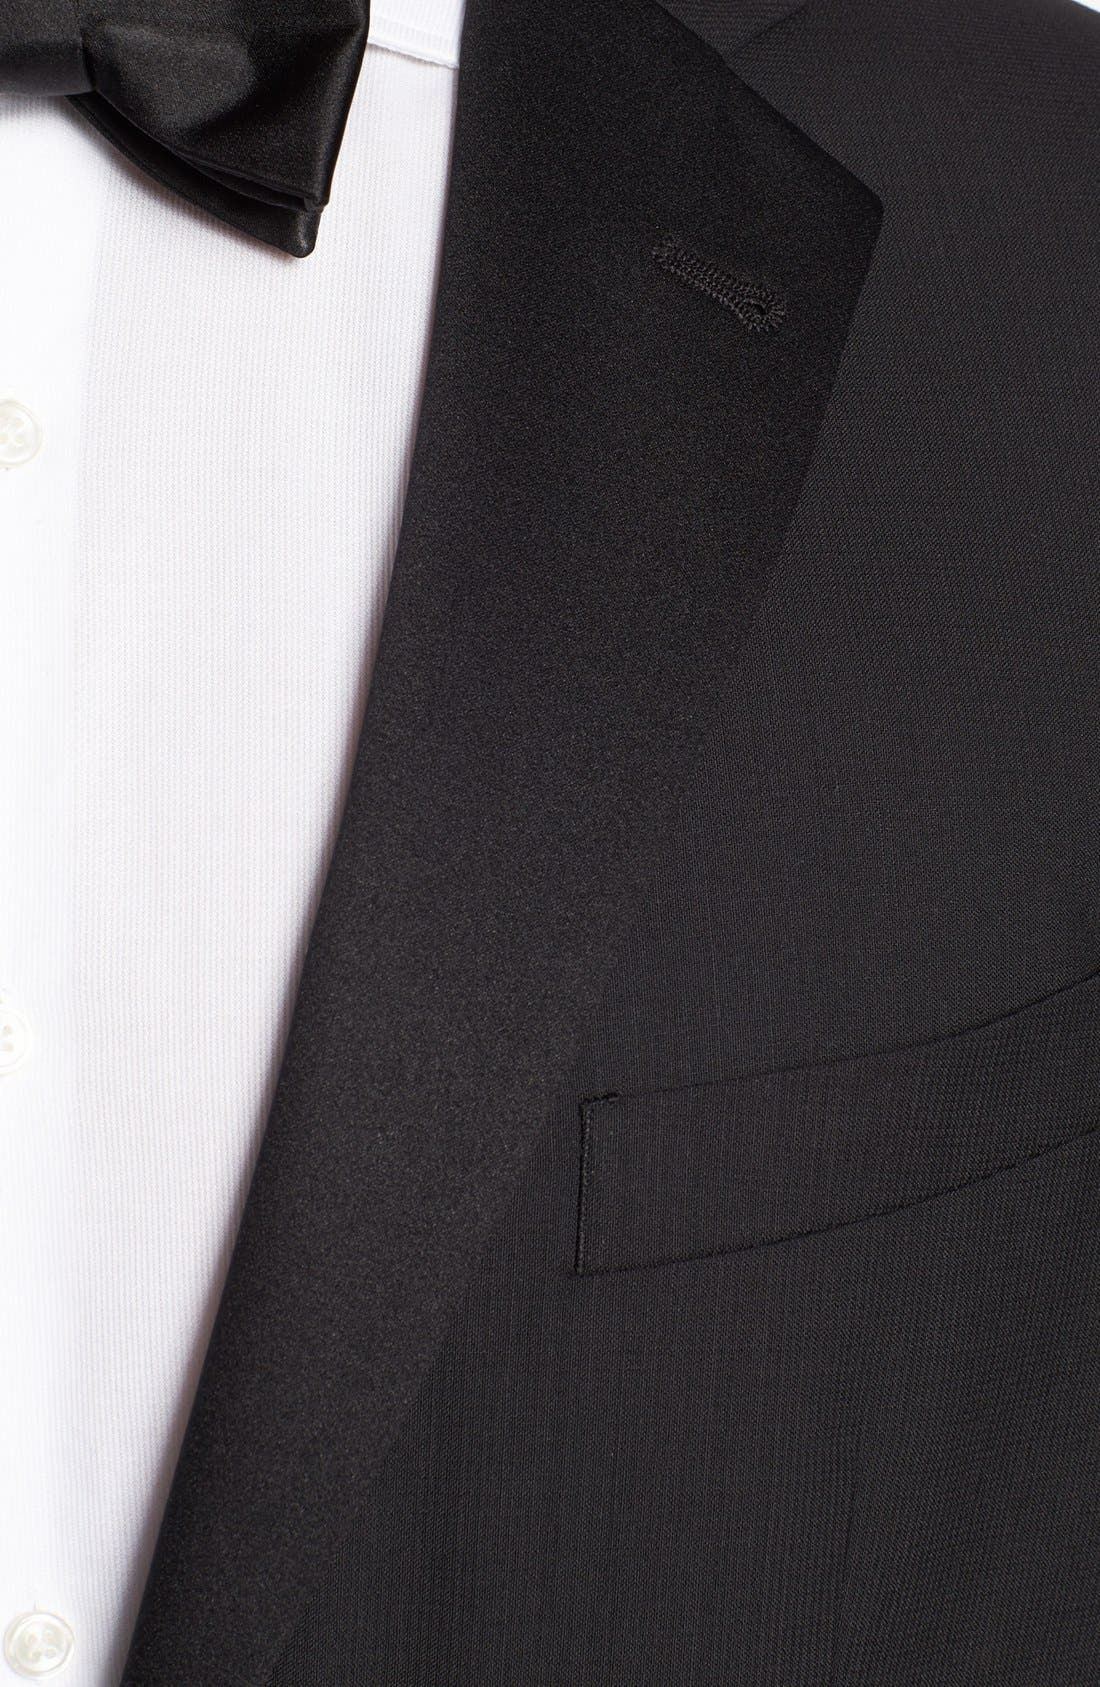 Alternate Image 2  - Joseph Abboud 'Profile Hybrid' Trim Fit Wool Tuxedo (Online Only)